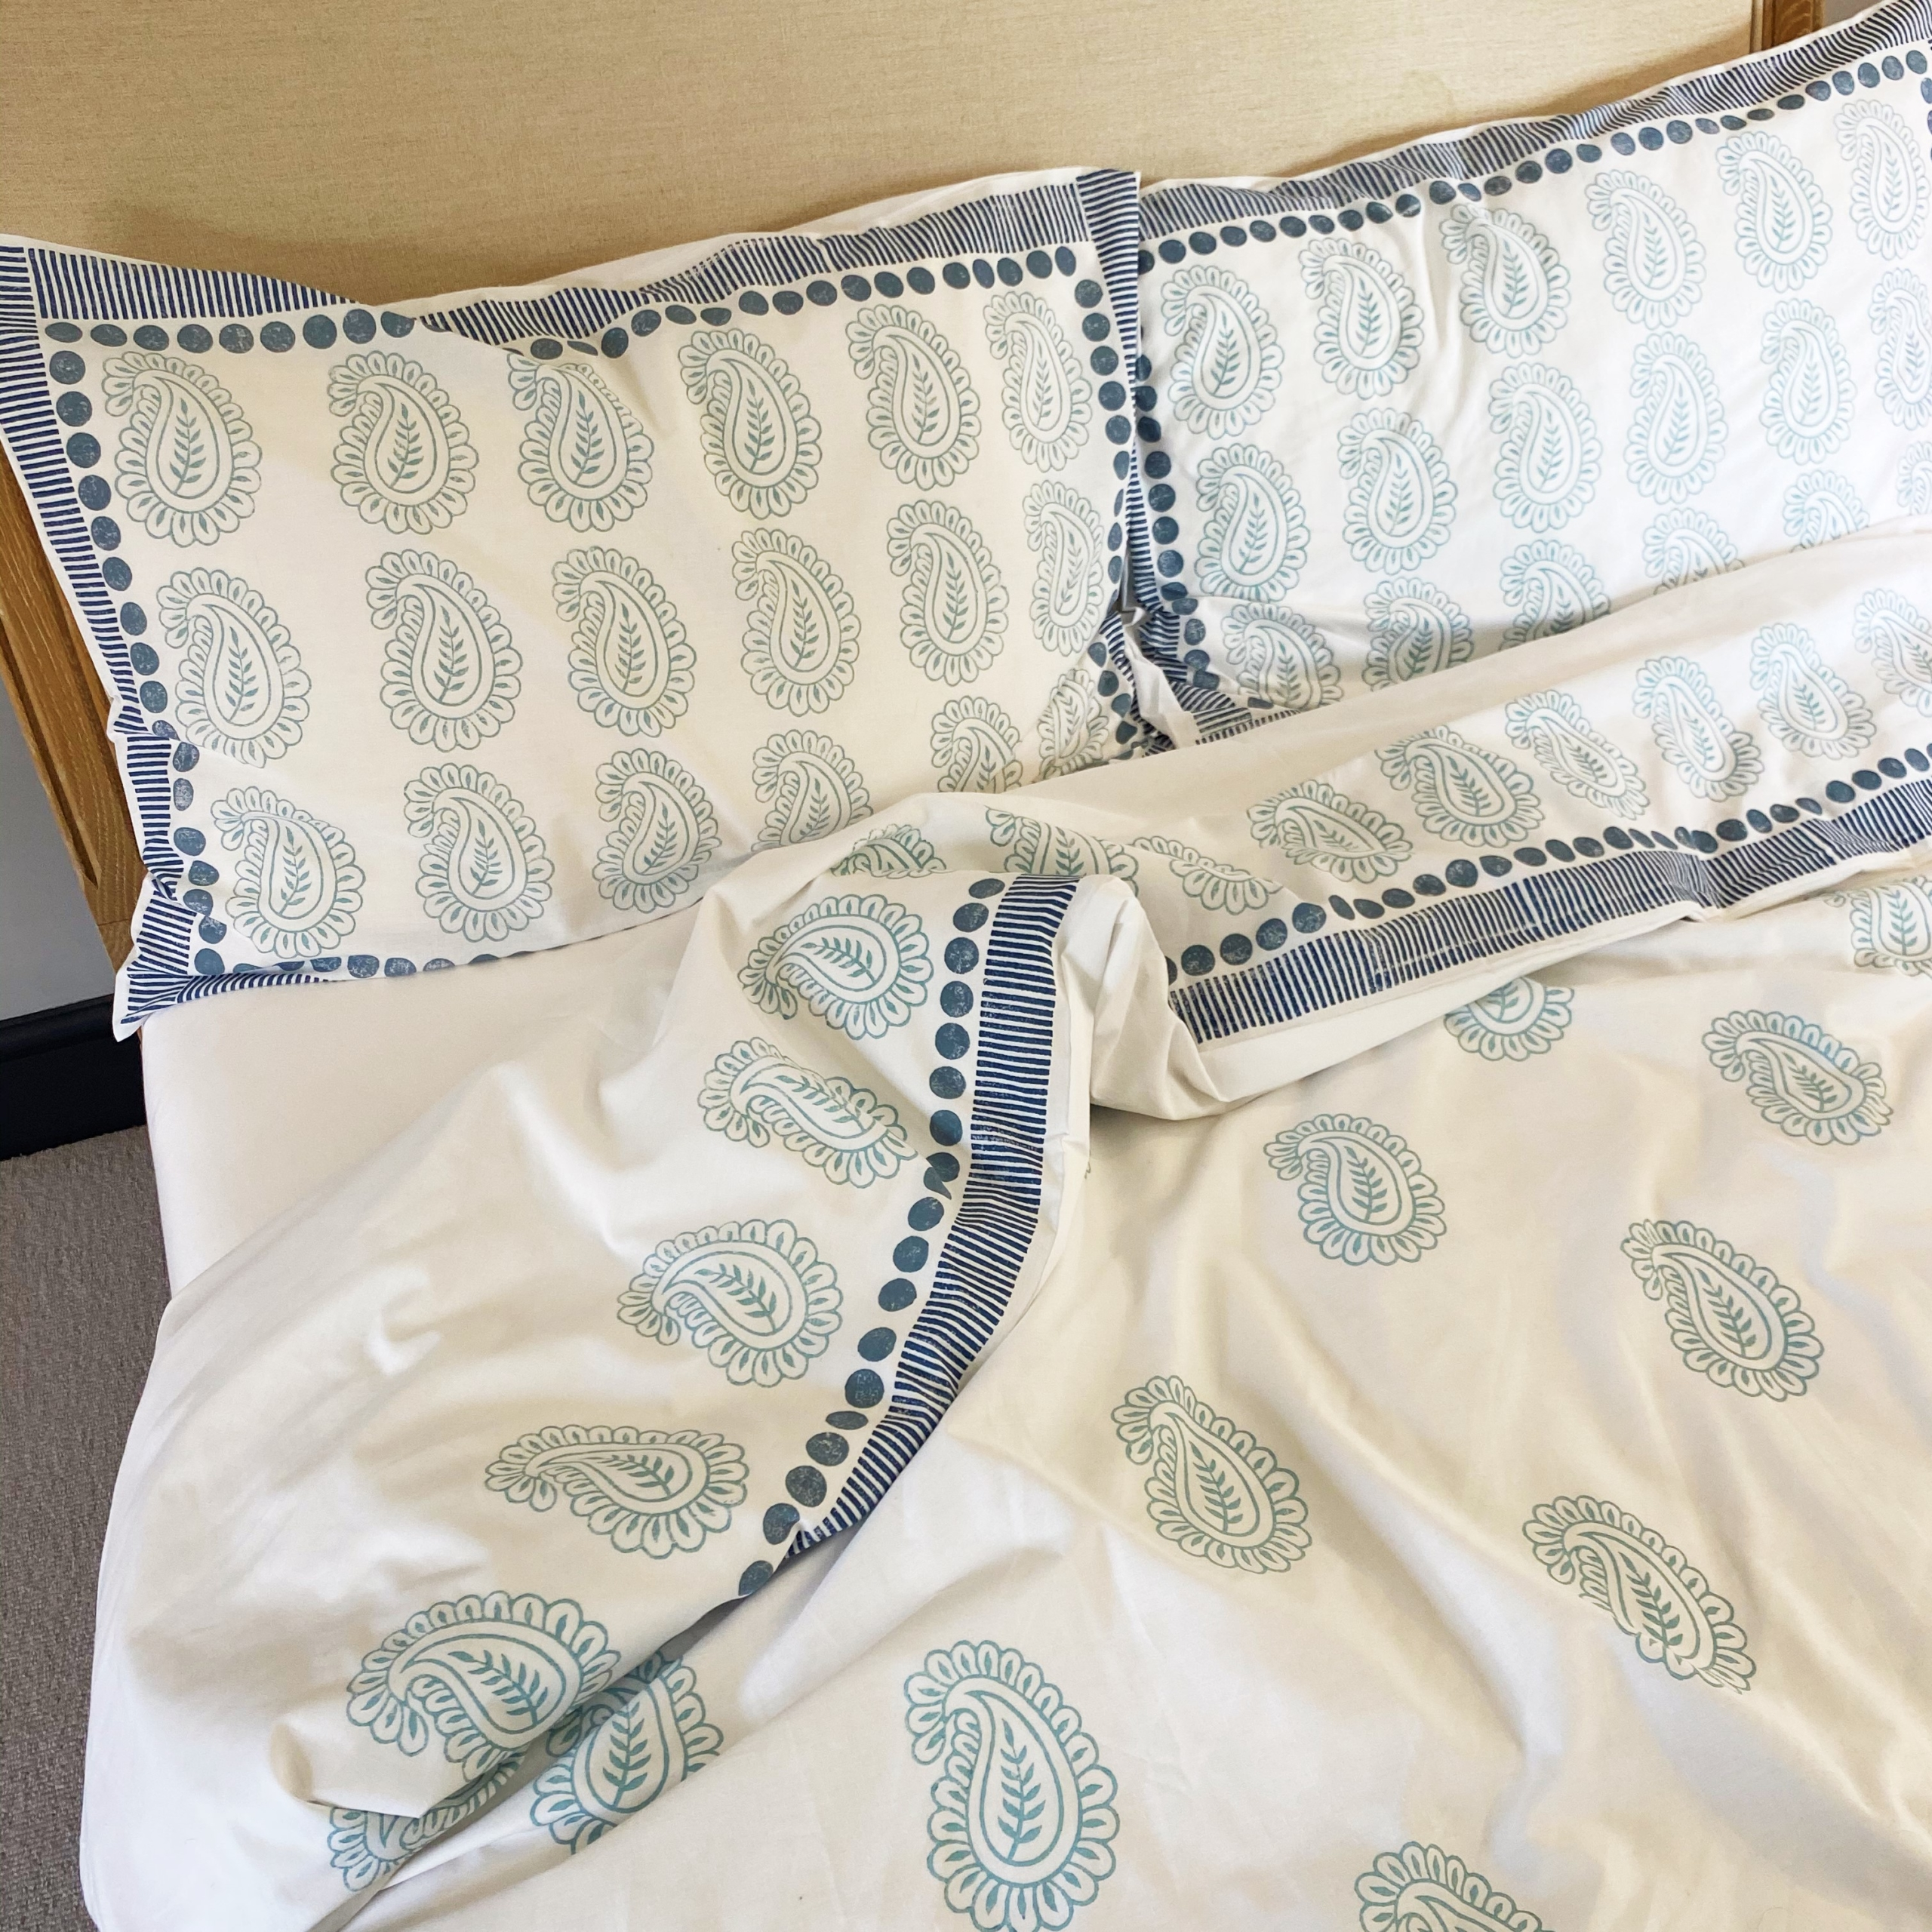 Block Printed Bedding- Printing Project